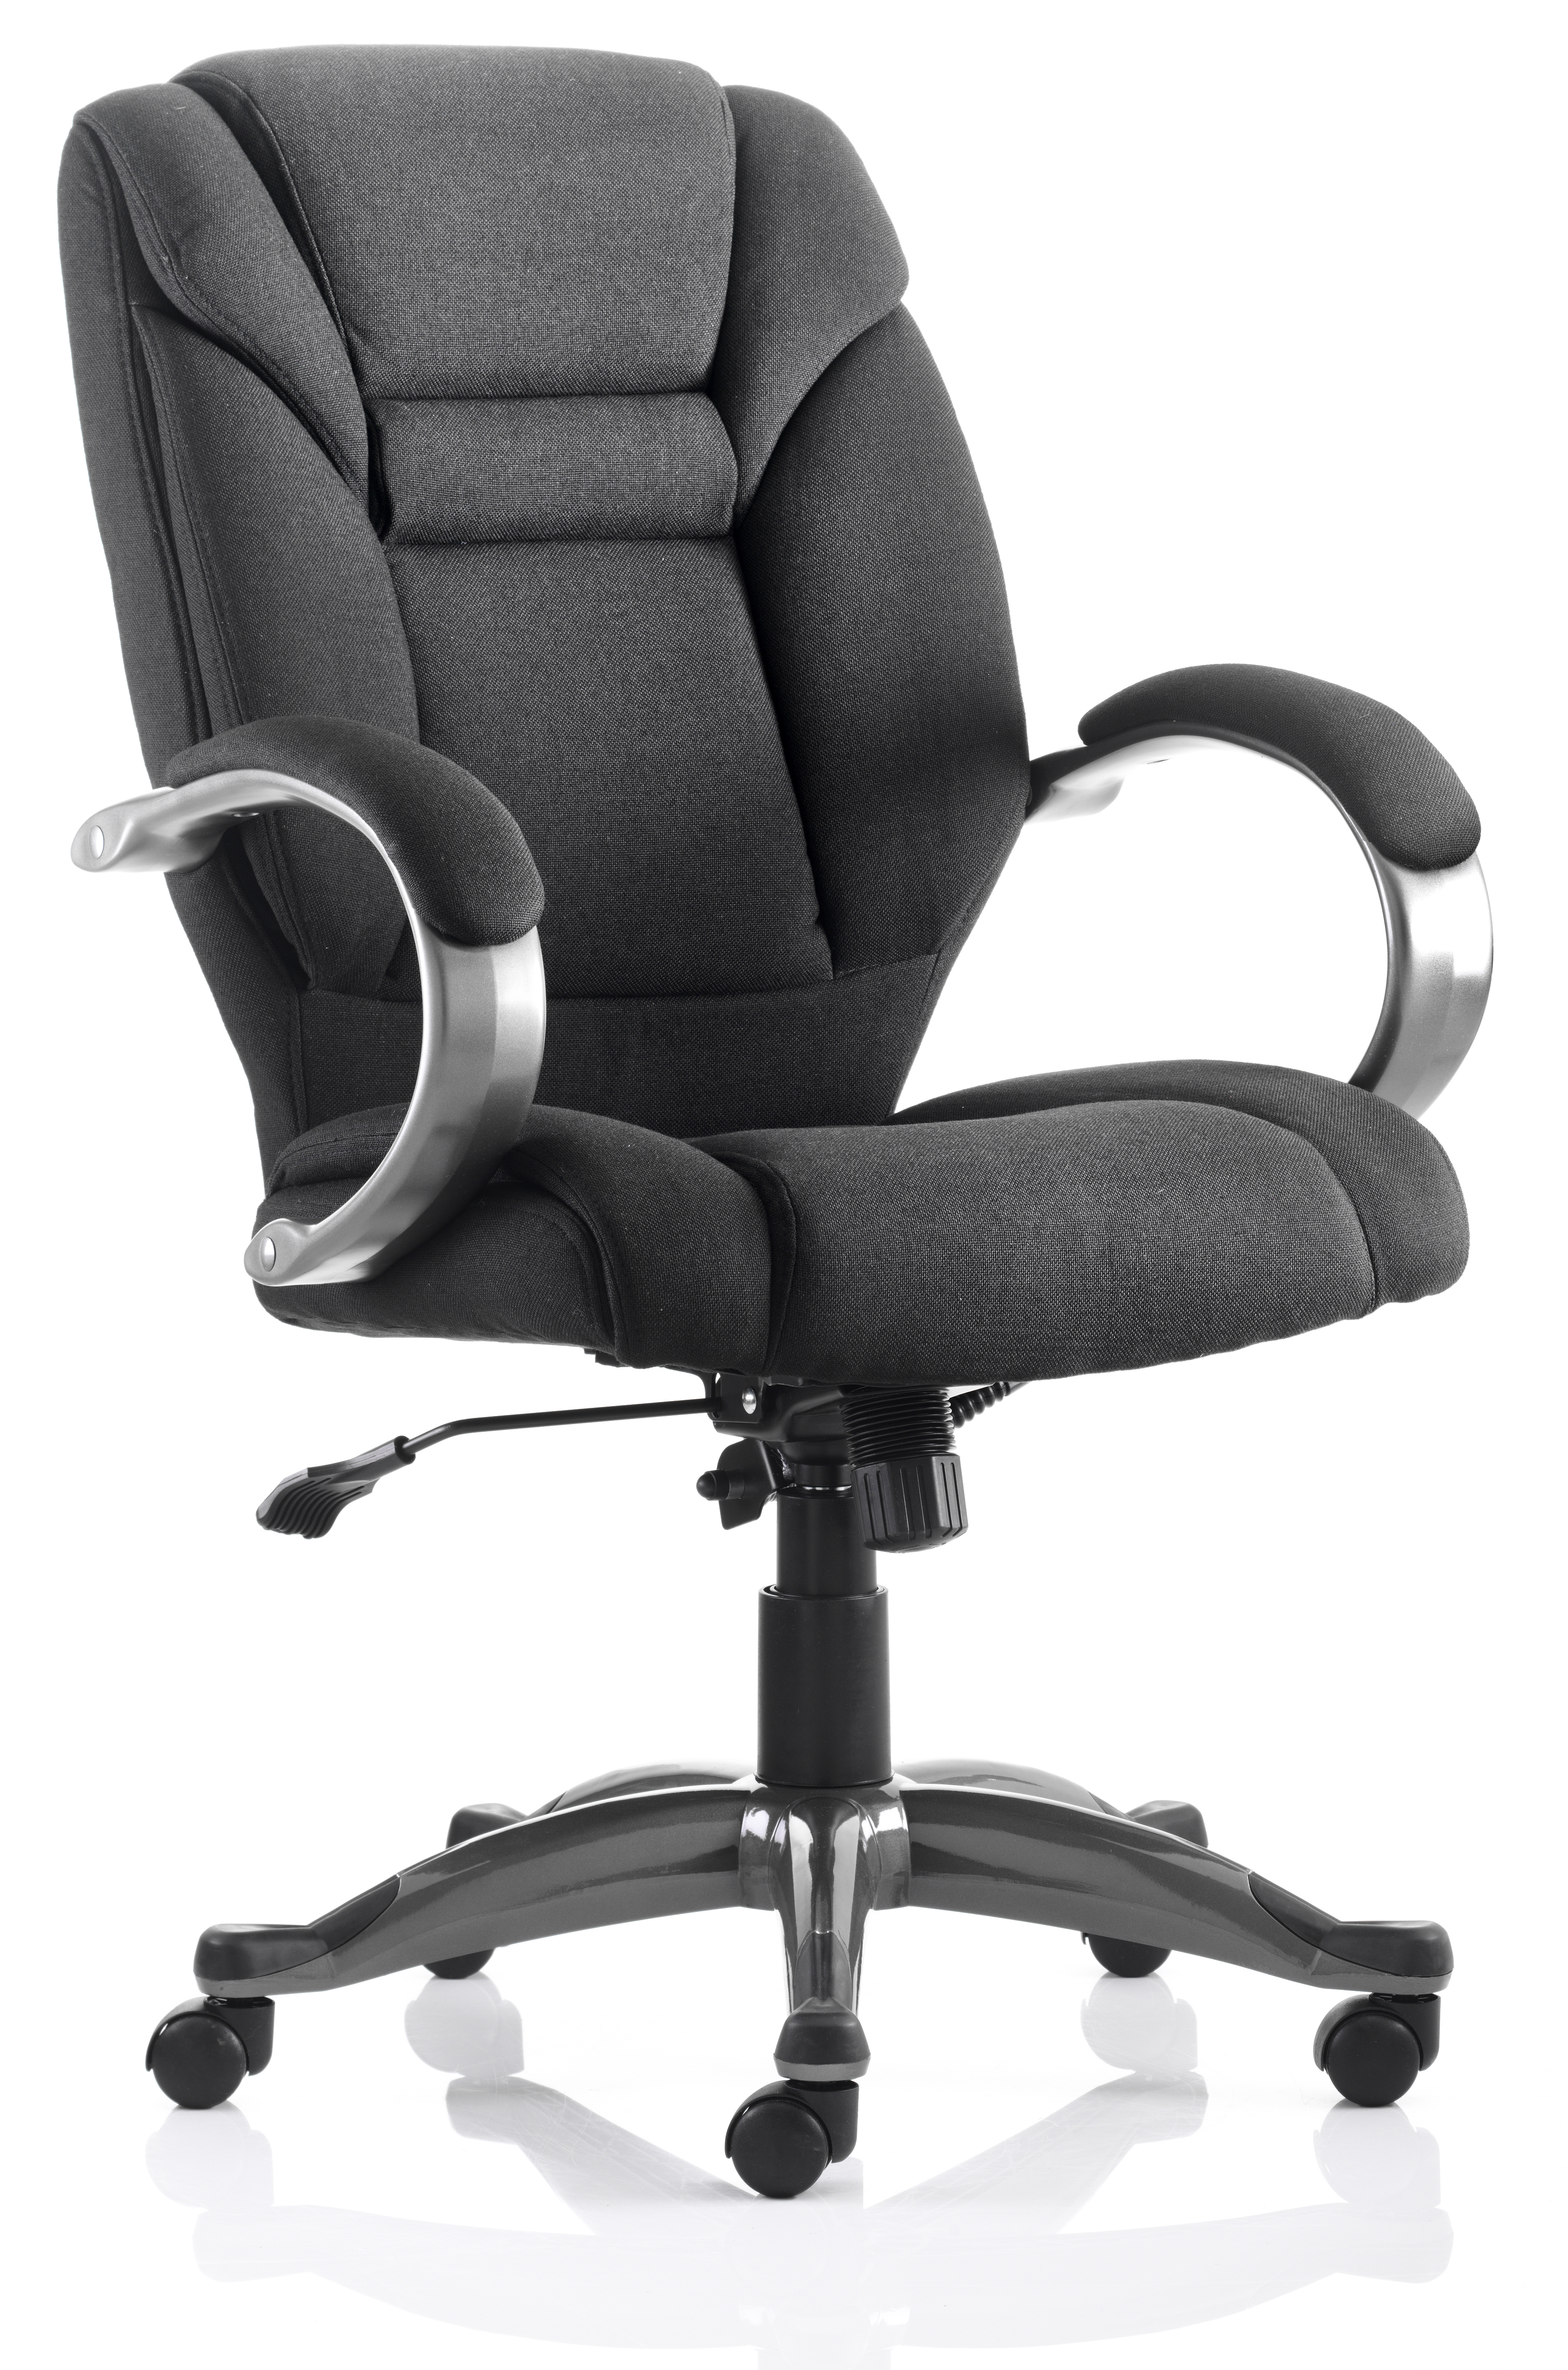 Executive Chairs Galloway Executive Chair Black Fabric EX000030